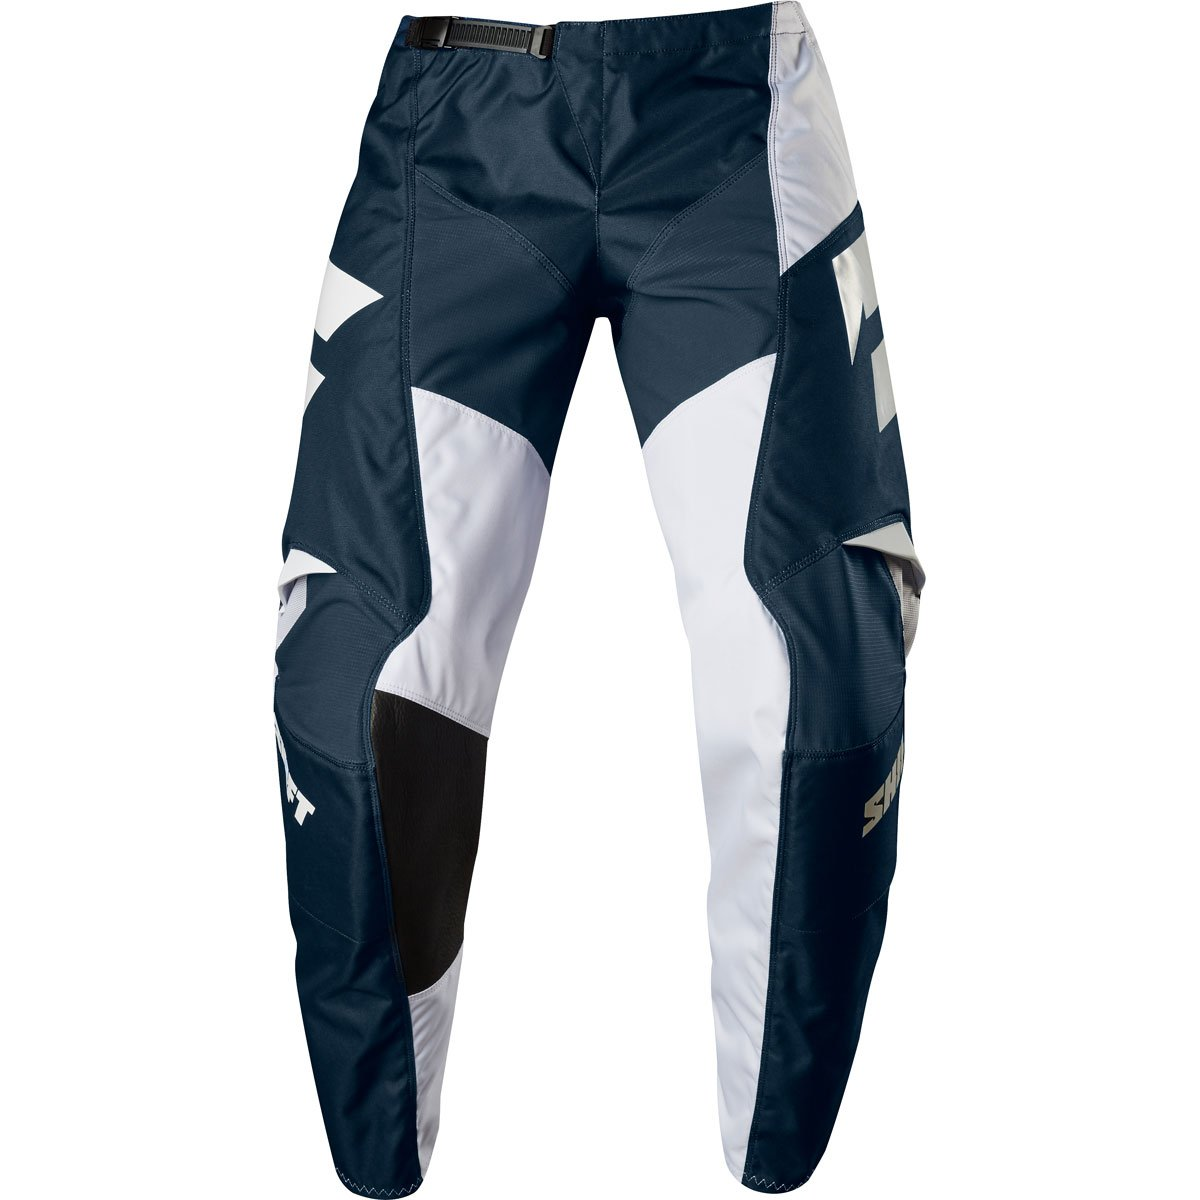 Shift Racing Whit3 Ninety Seven Men's Off-Road Motorcycle Pants - 38 / Navy